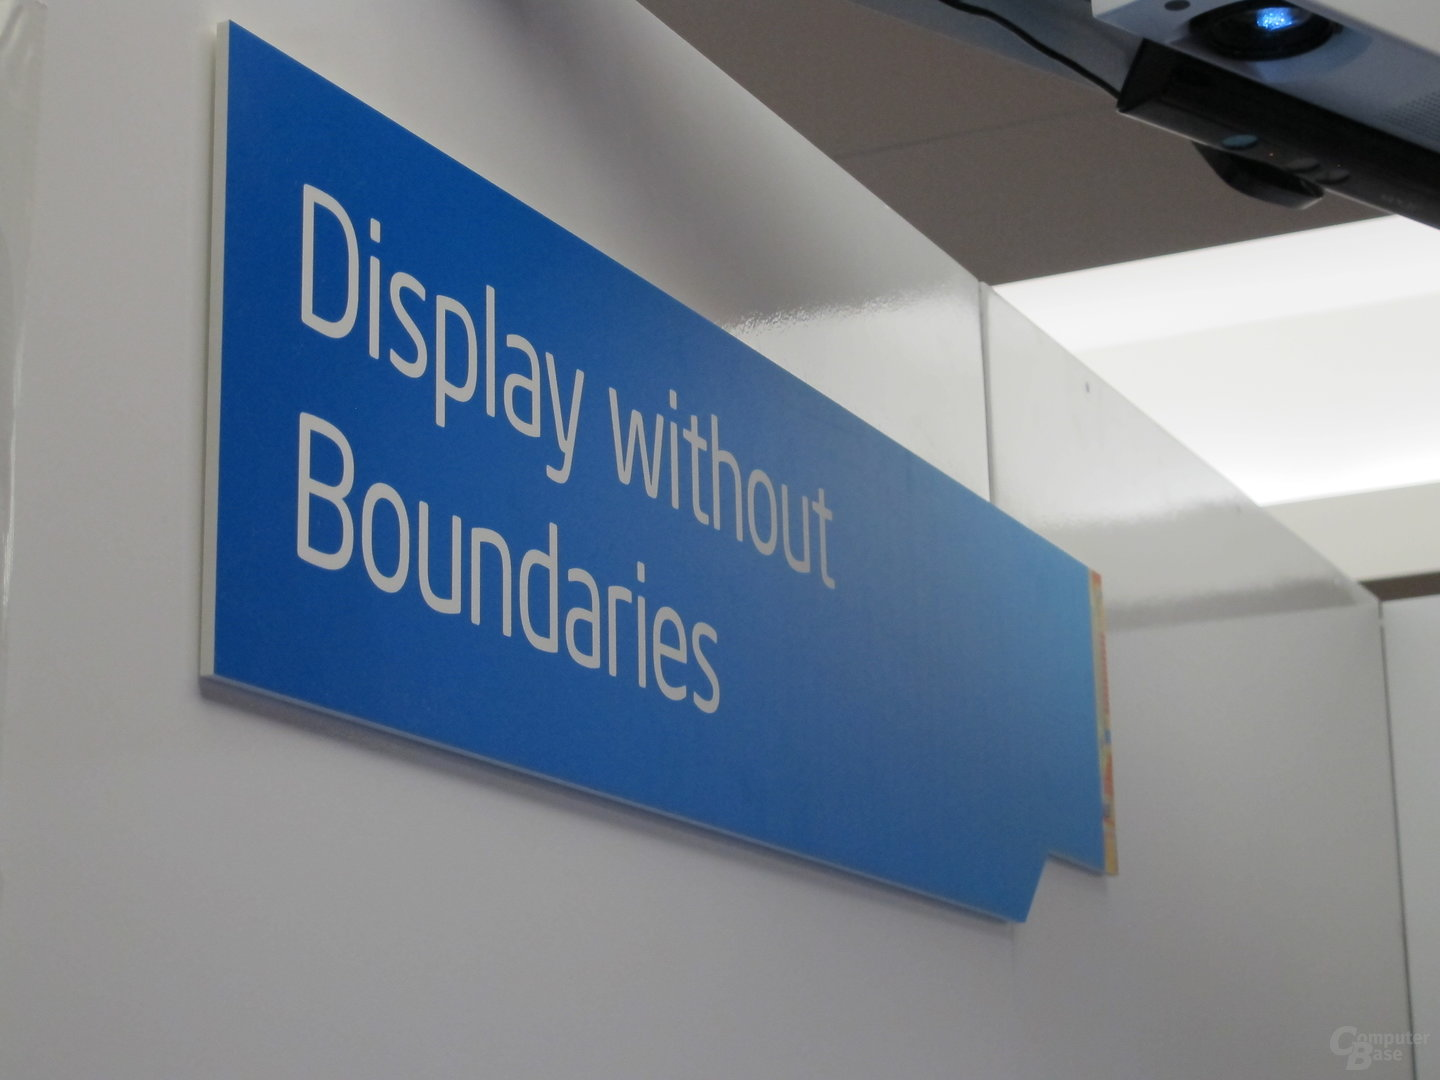 IDF 2012: Display without Boundries